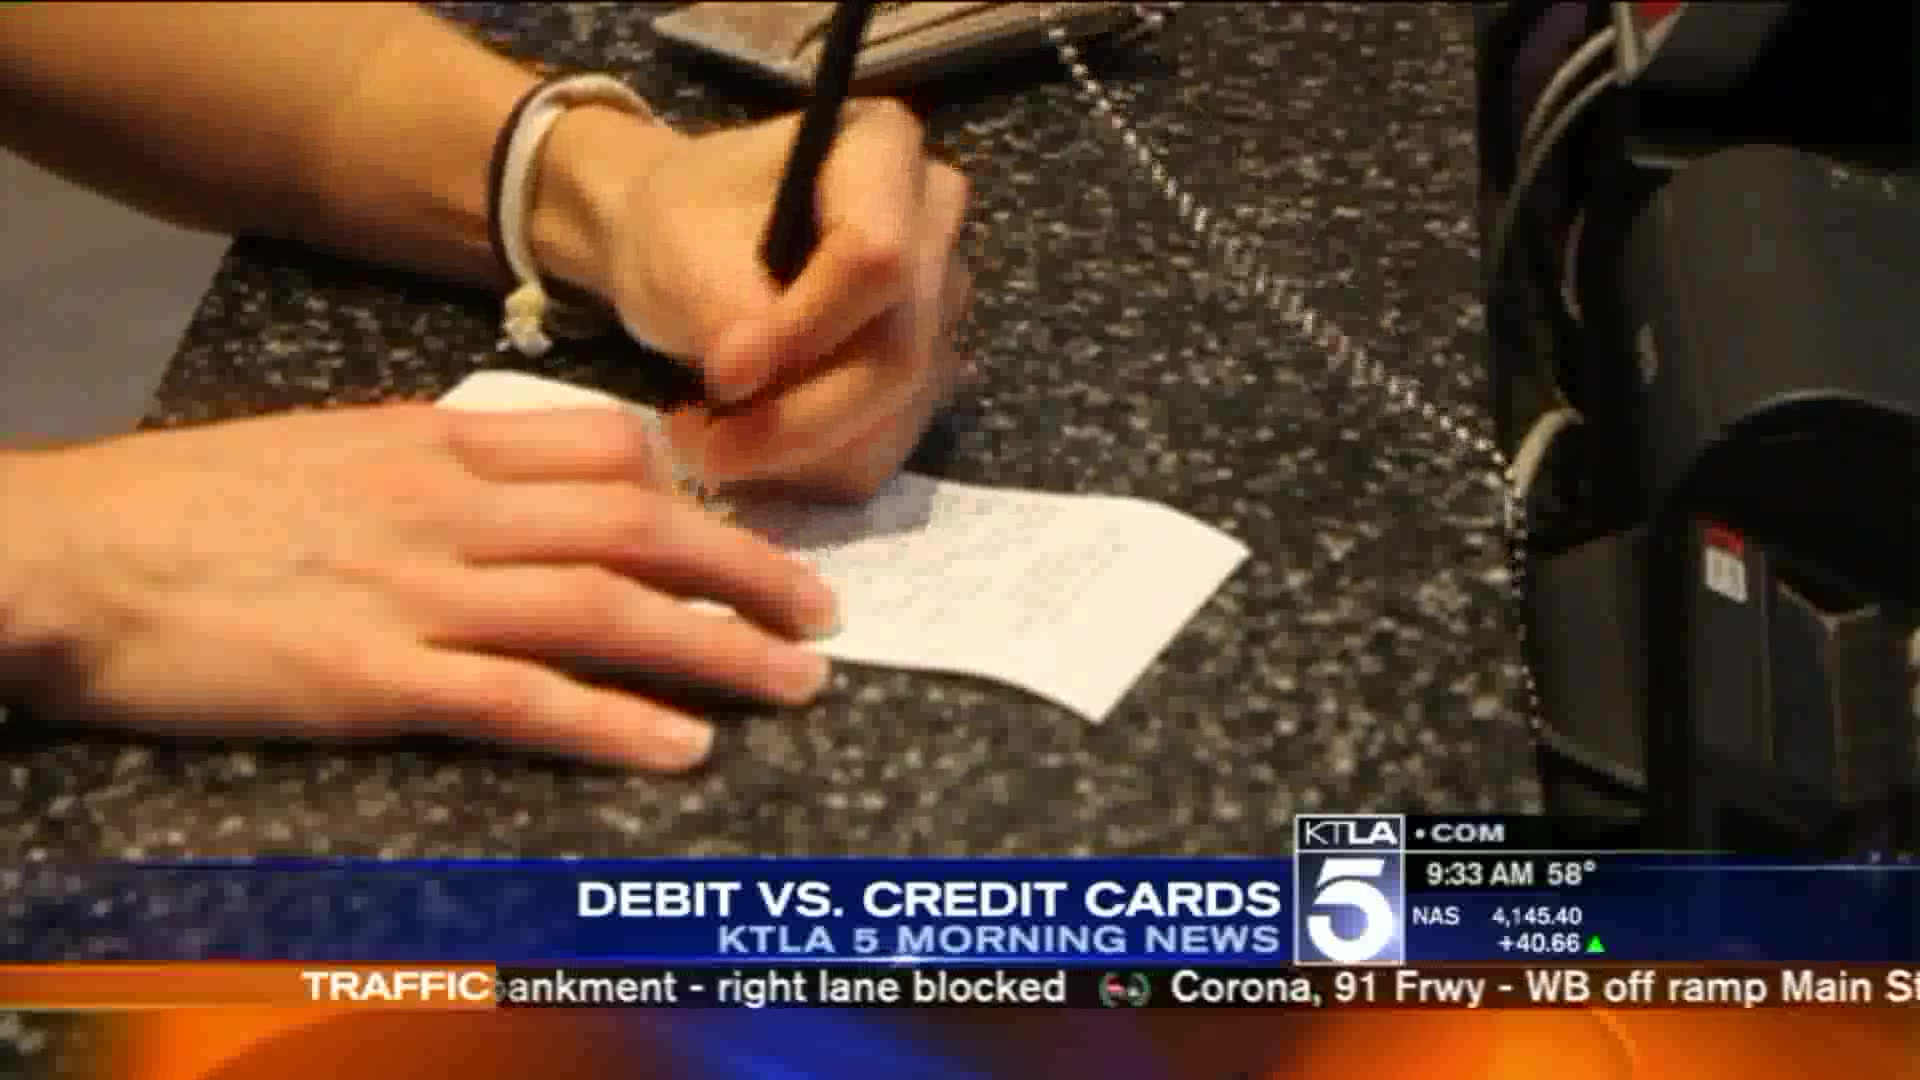 What Is The Safest Way To Pay: Debit Or Credit?